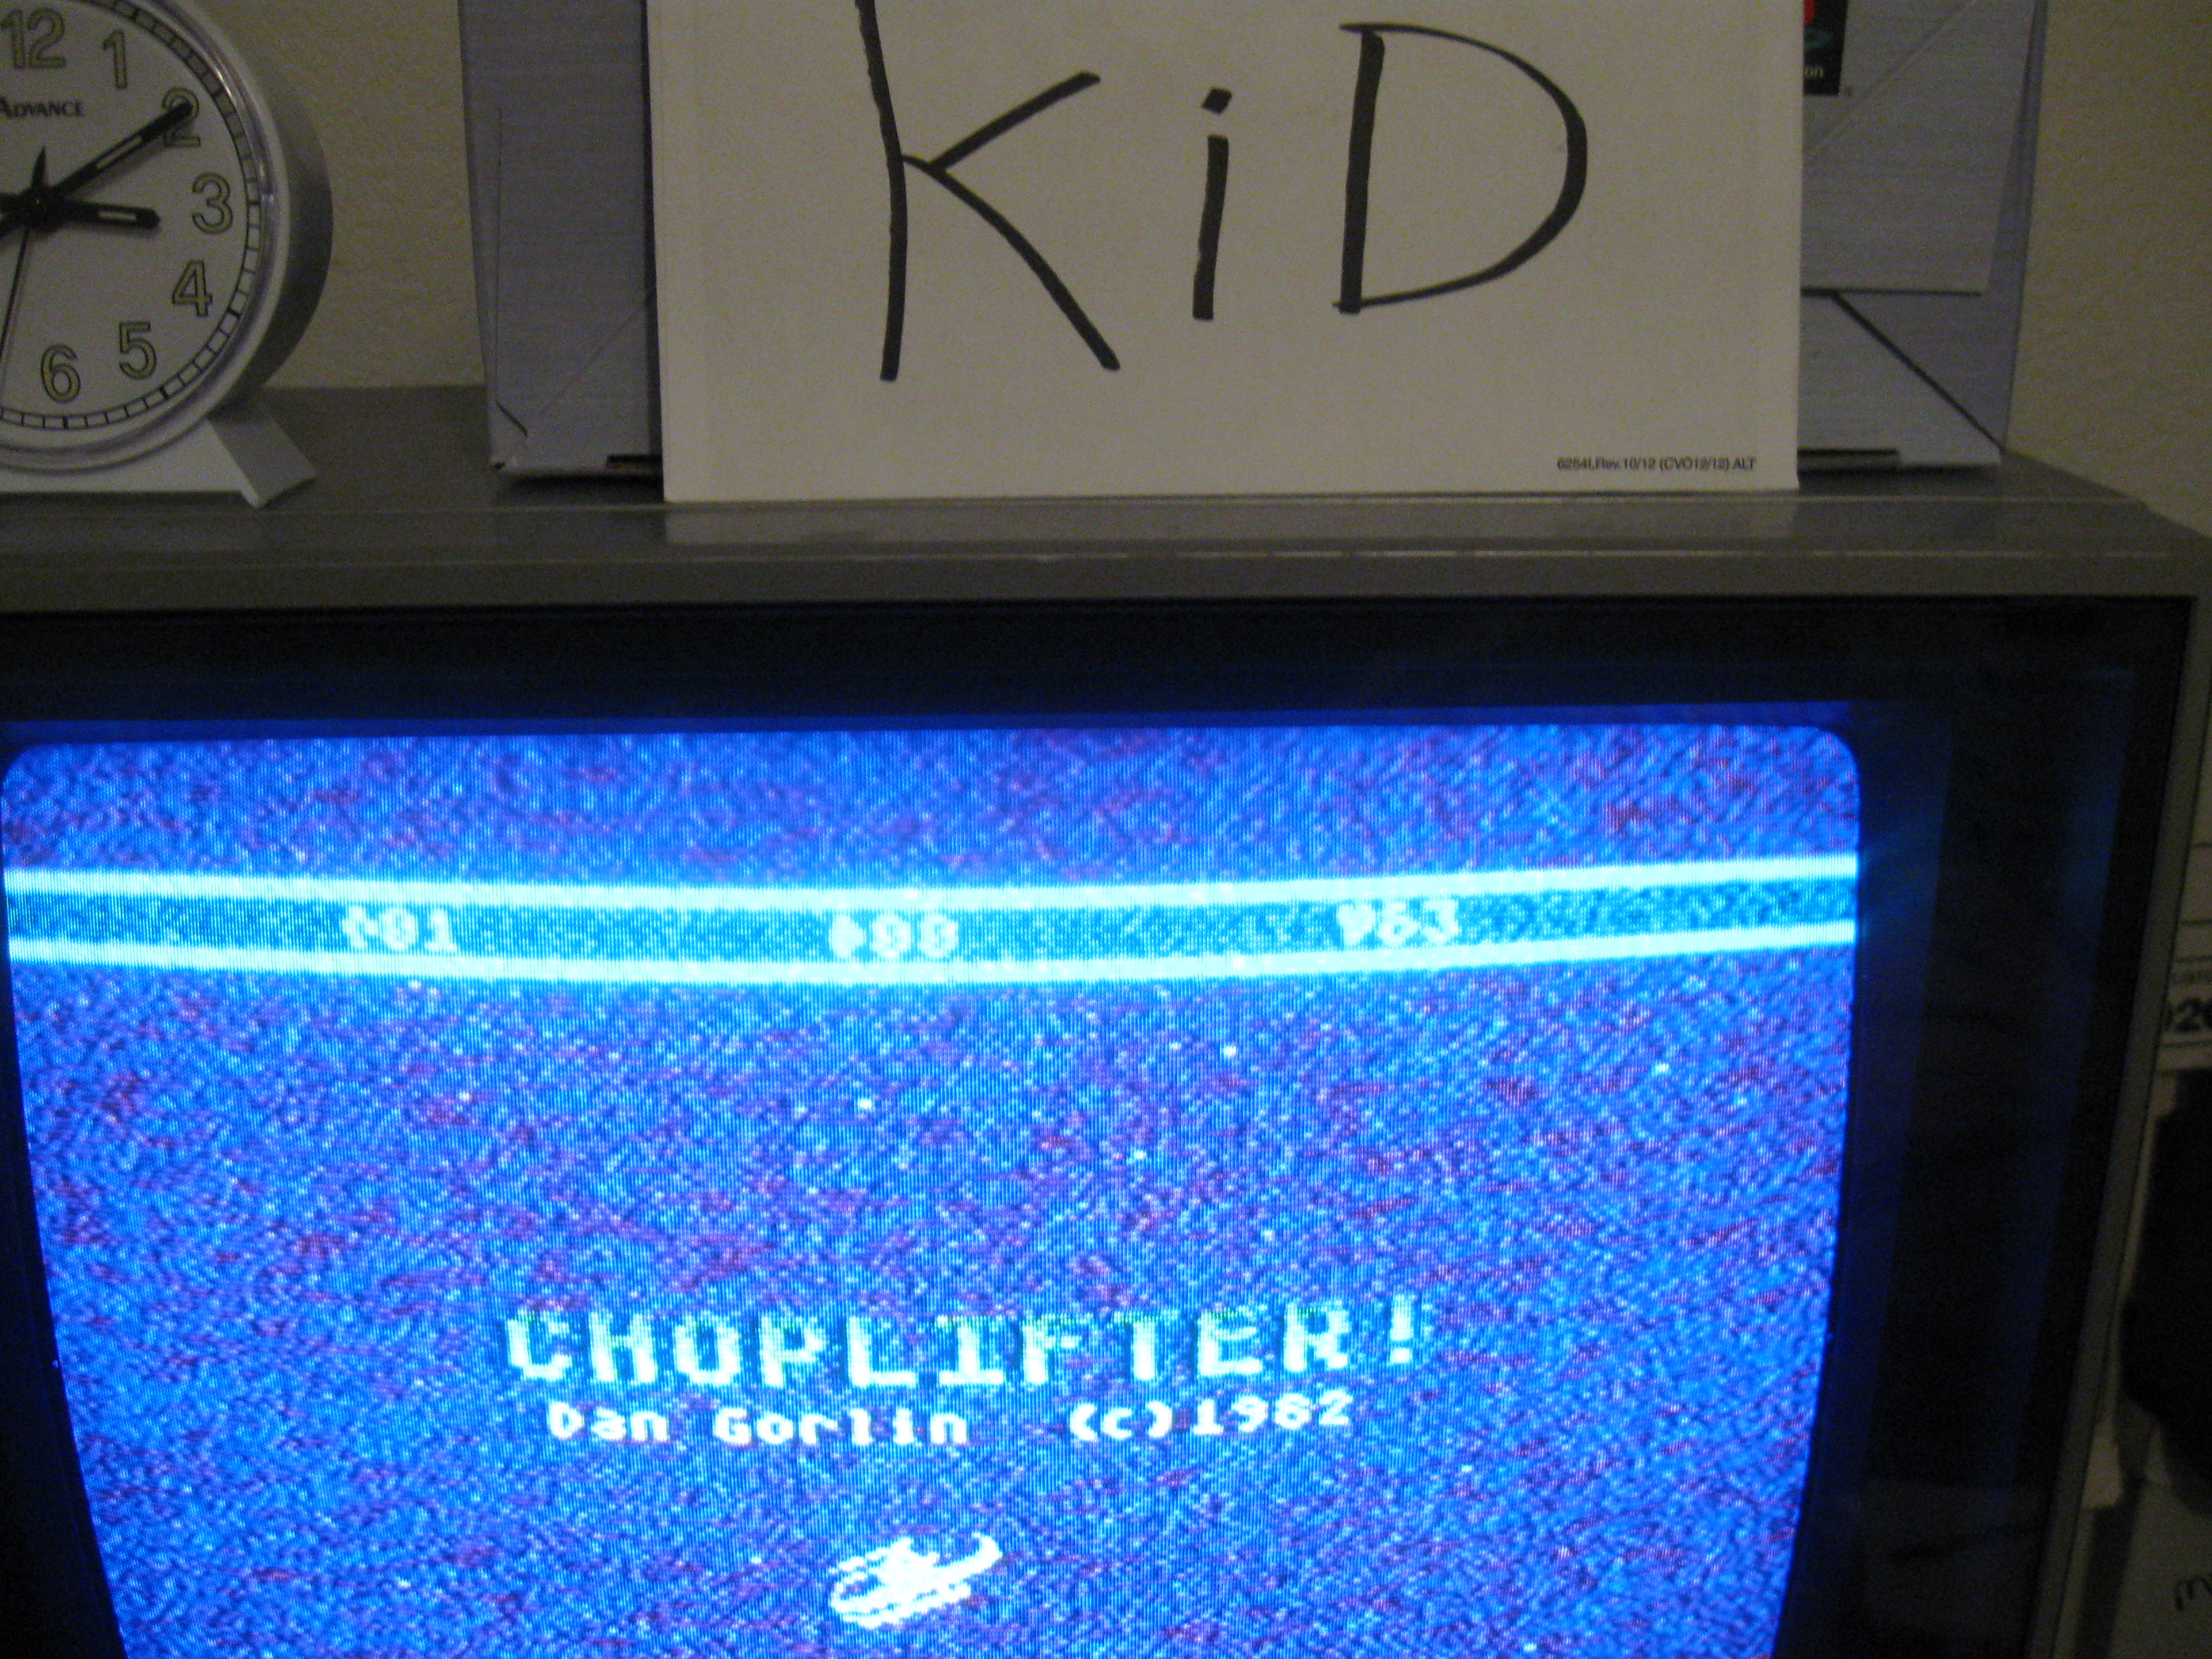 DakotaKid: Choplifter! (Atari 5200) 63 points on 2016-04-16 16:55:36